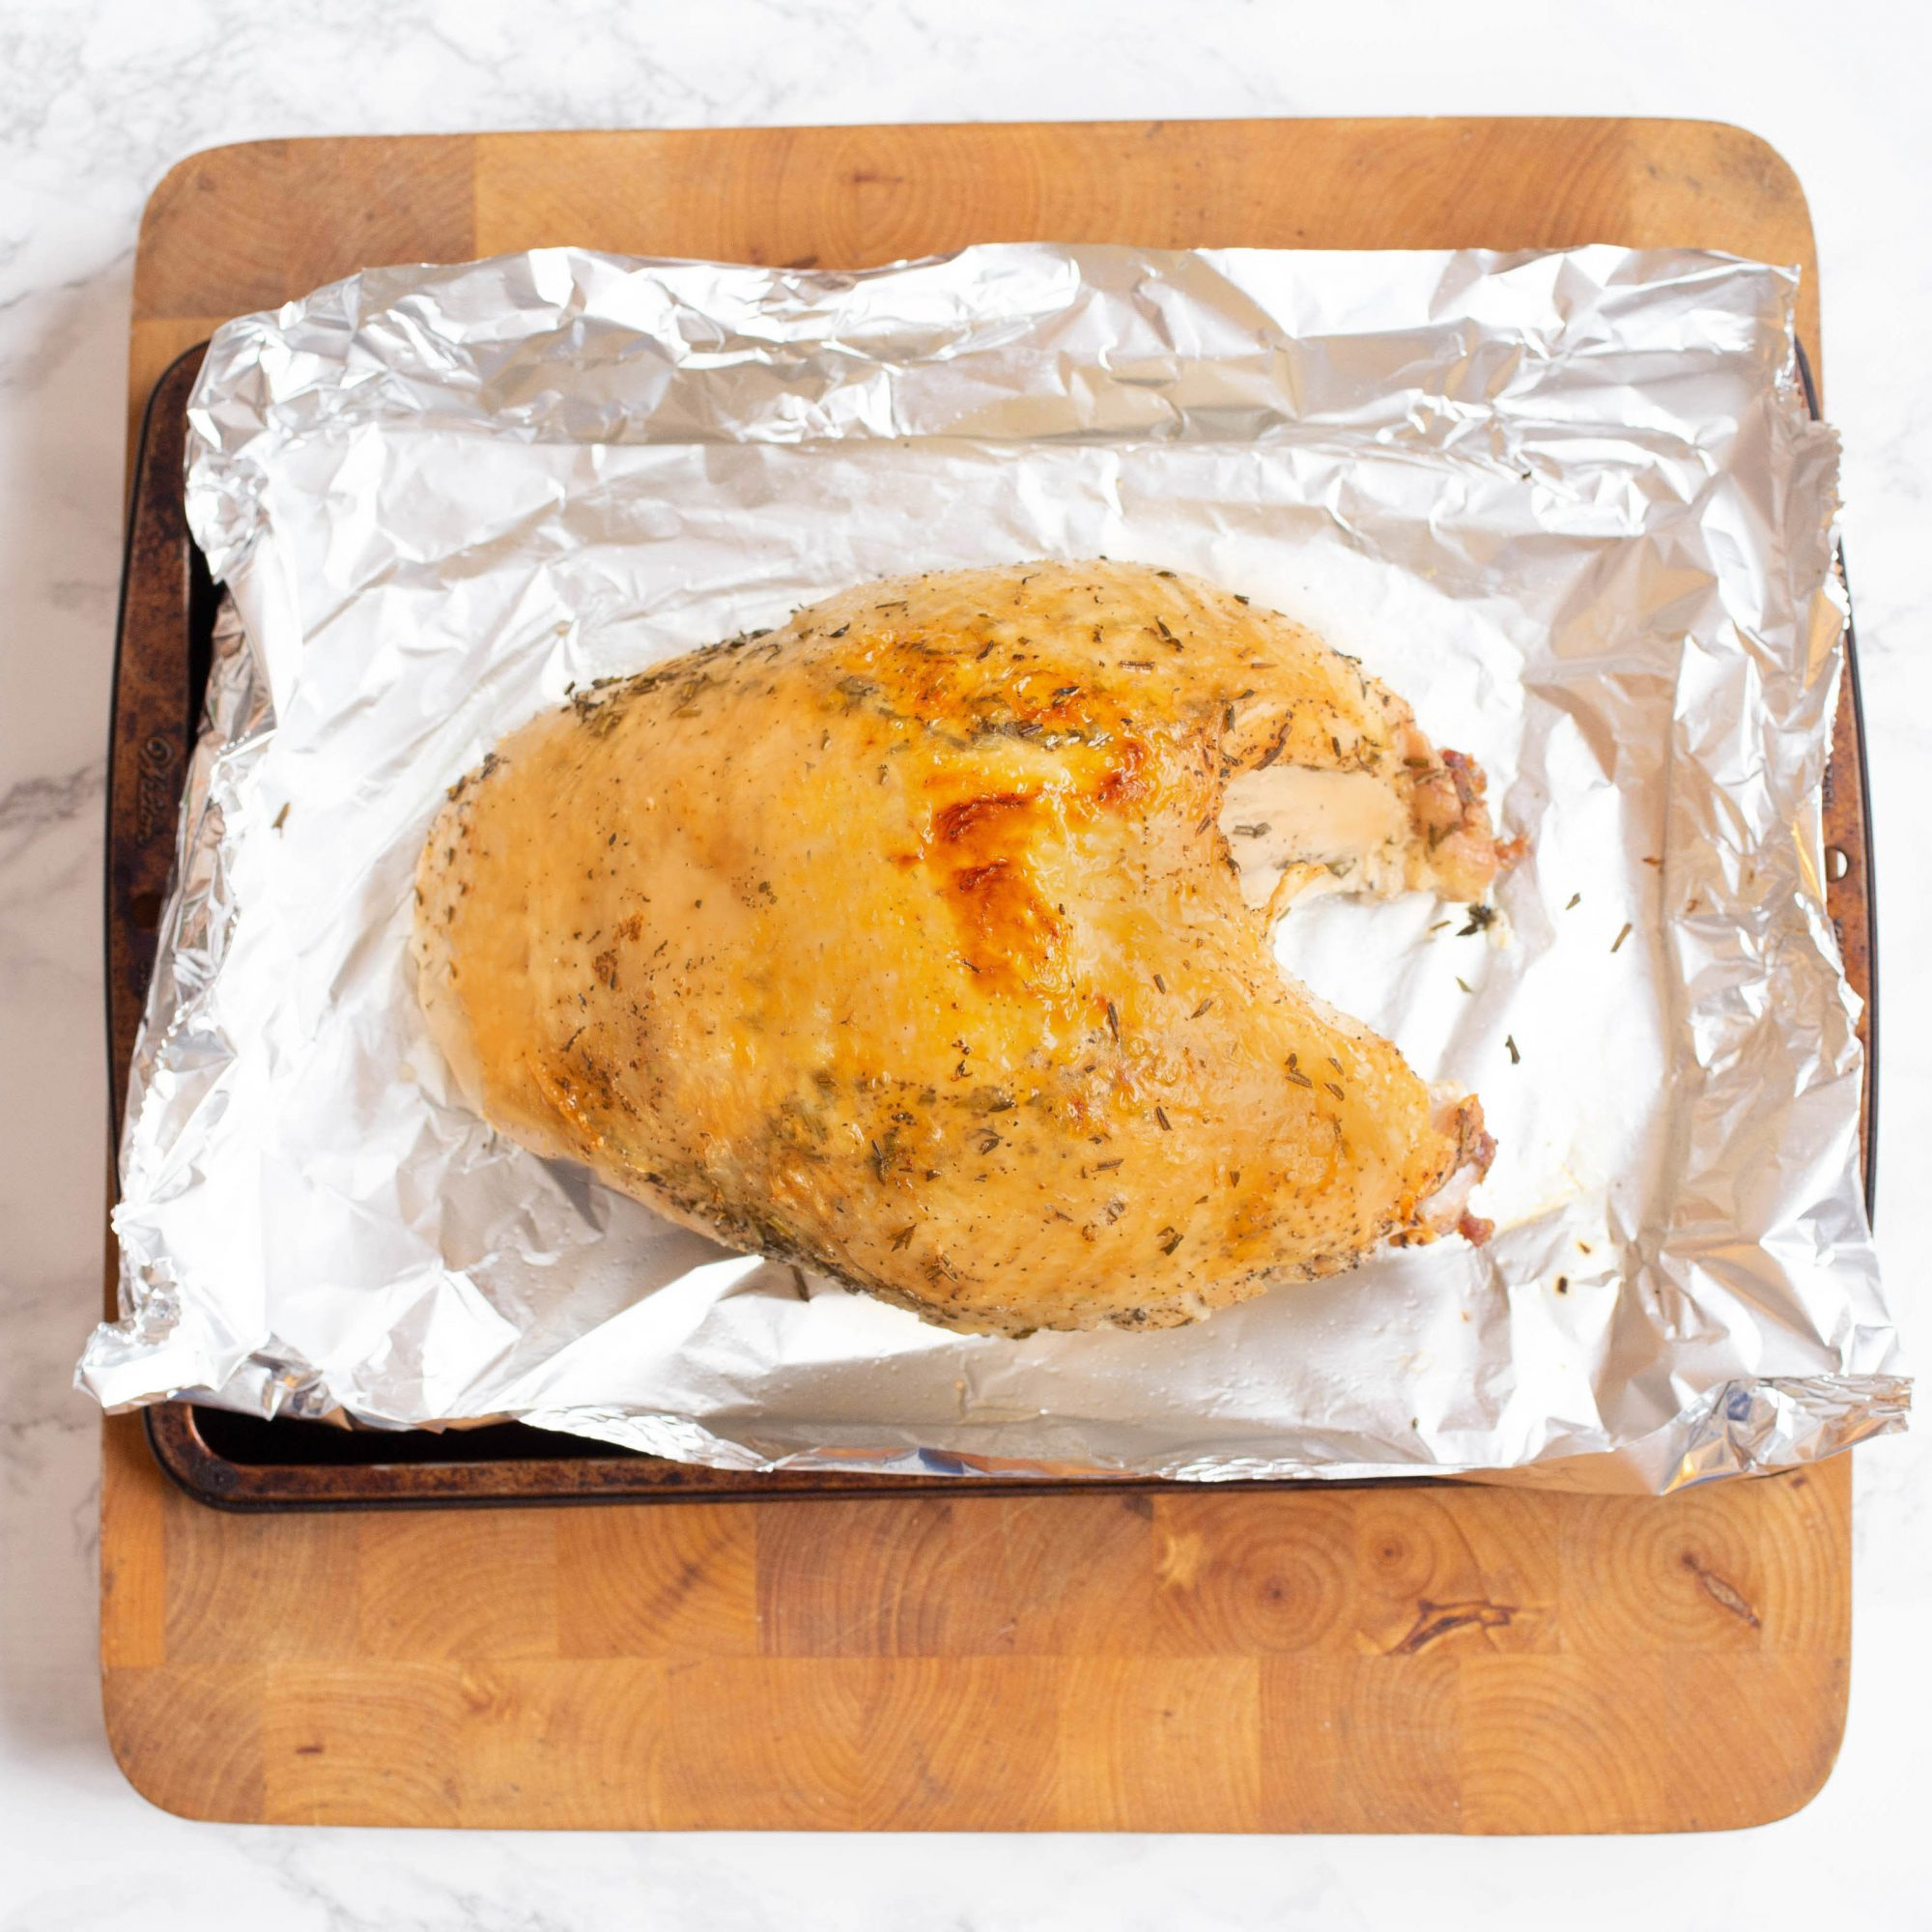 Turkey breast on a baking sheet with aluminum foil with a nice browned color on the skin